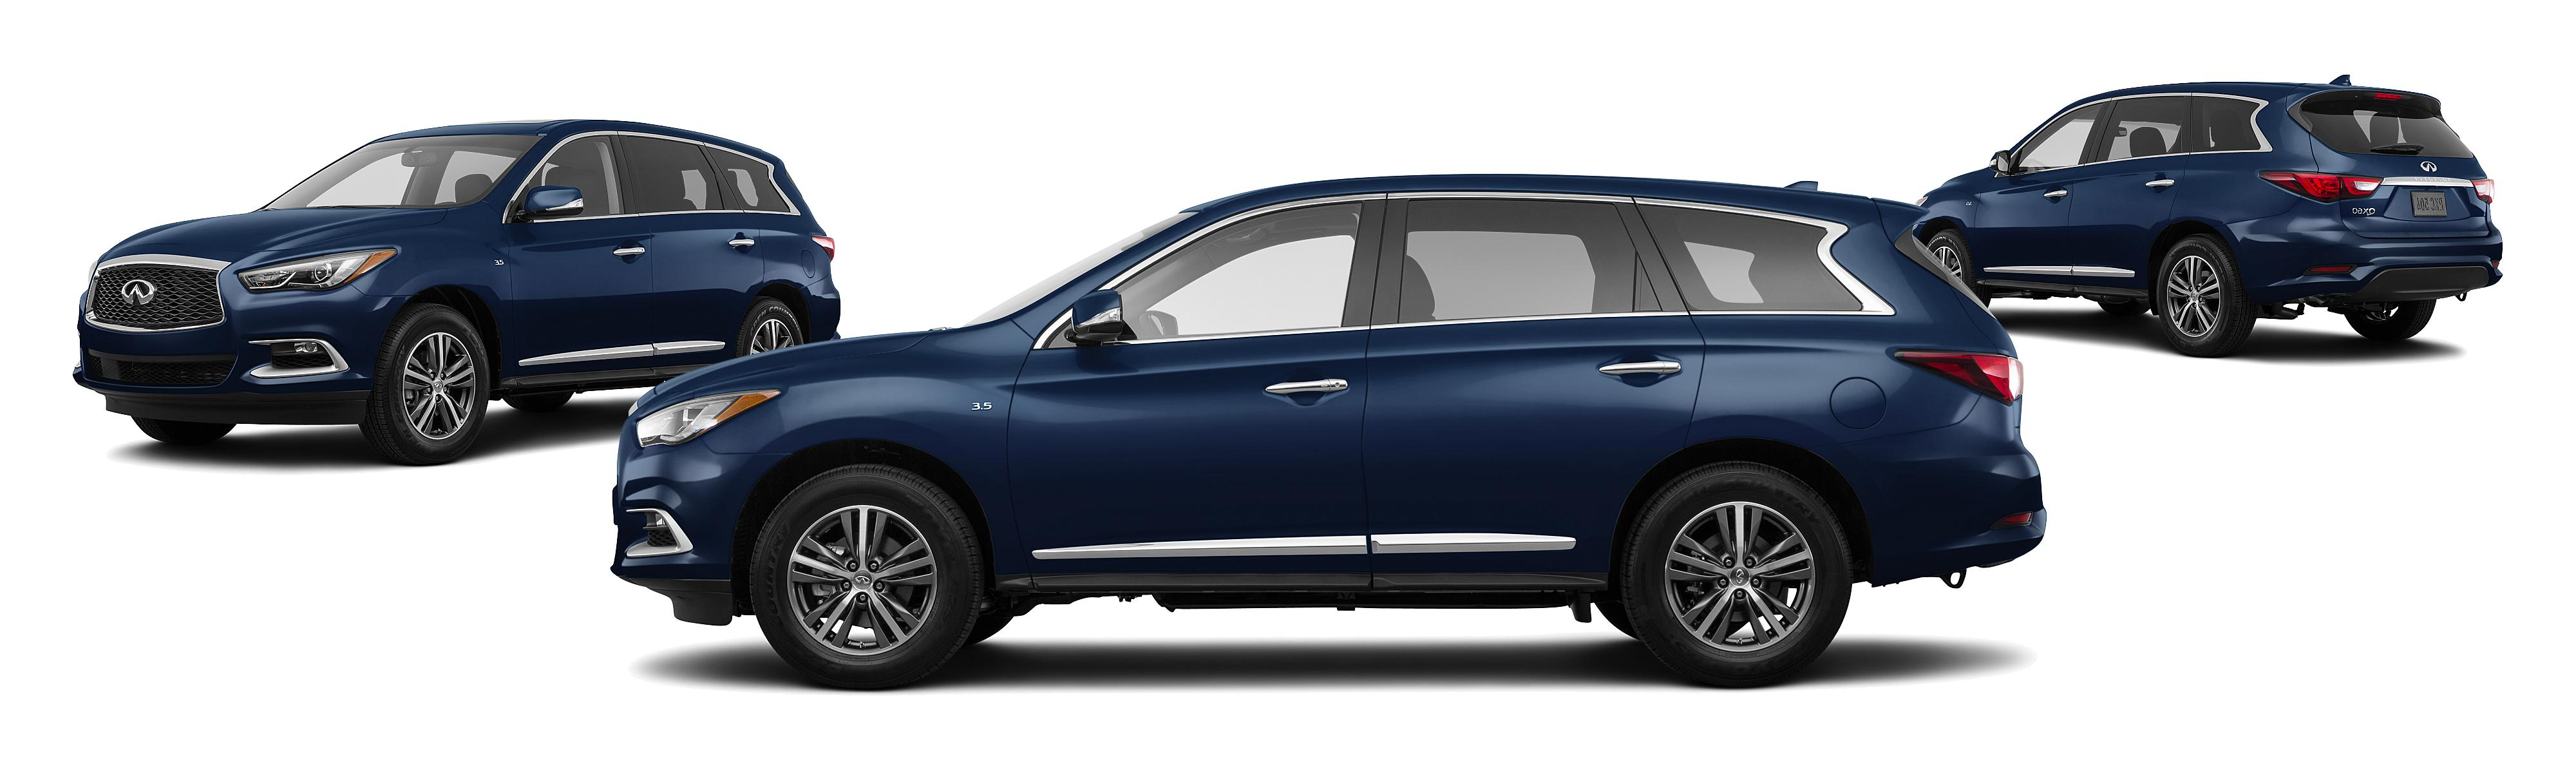 enclave car trend motor buick suv infiniti en news compare cargo rear and infinity